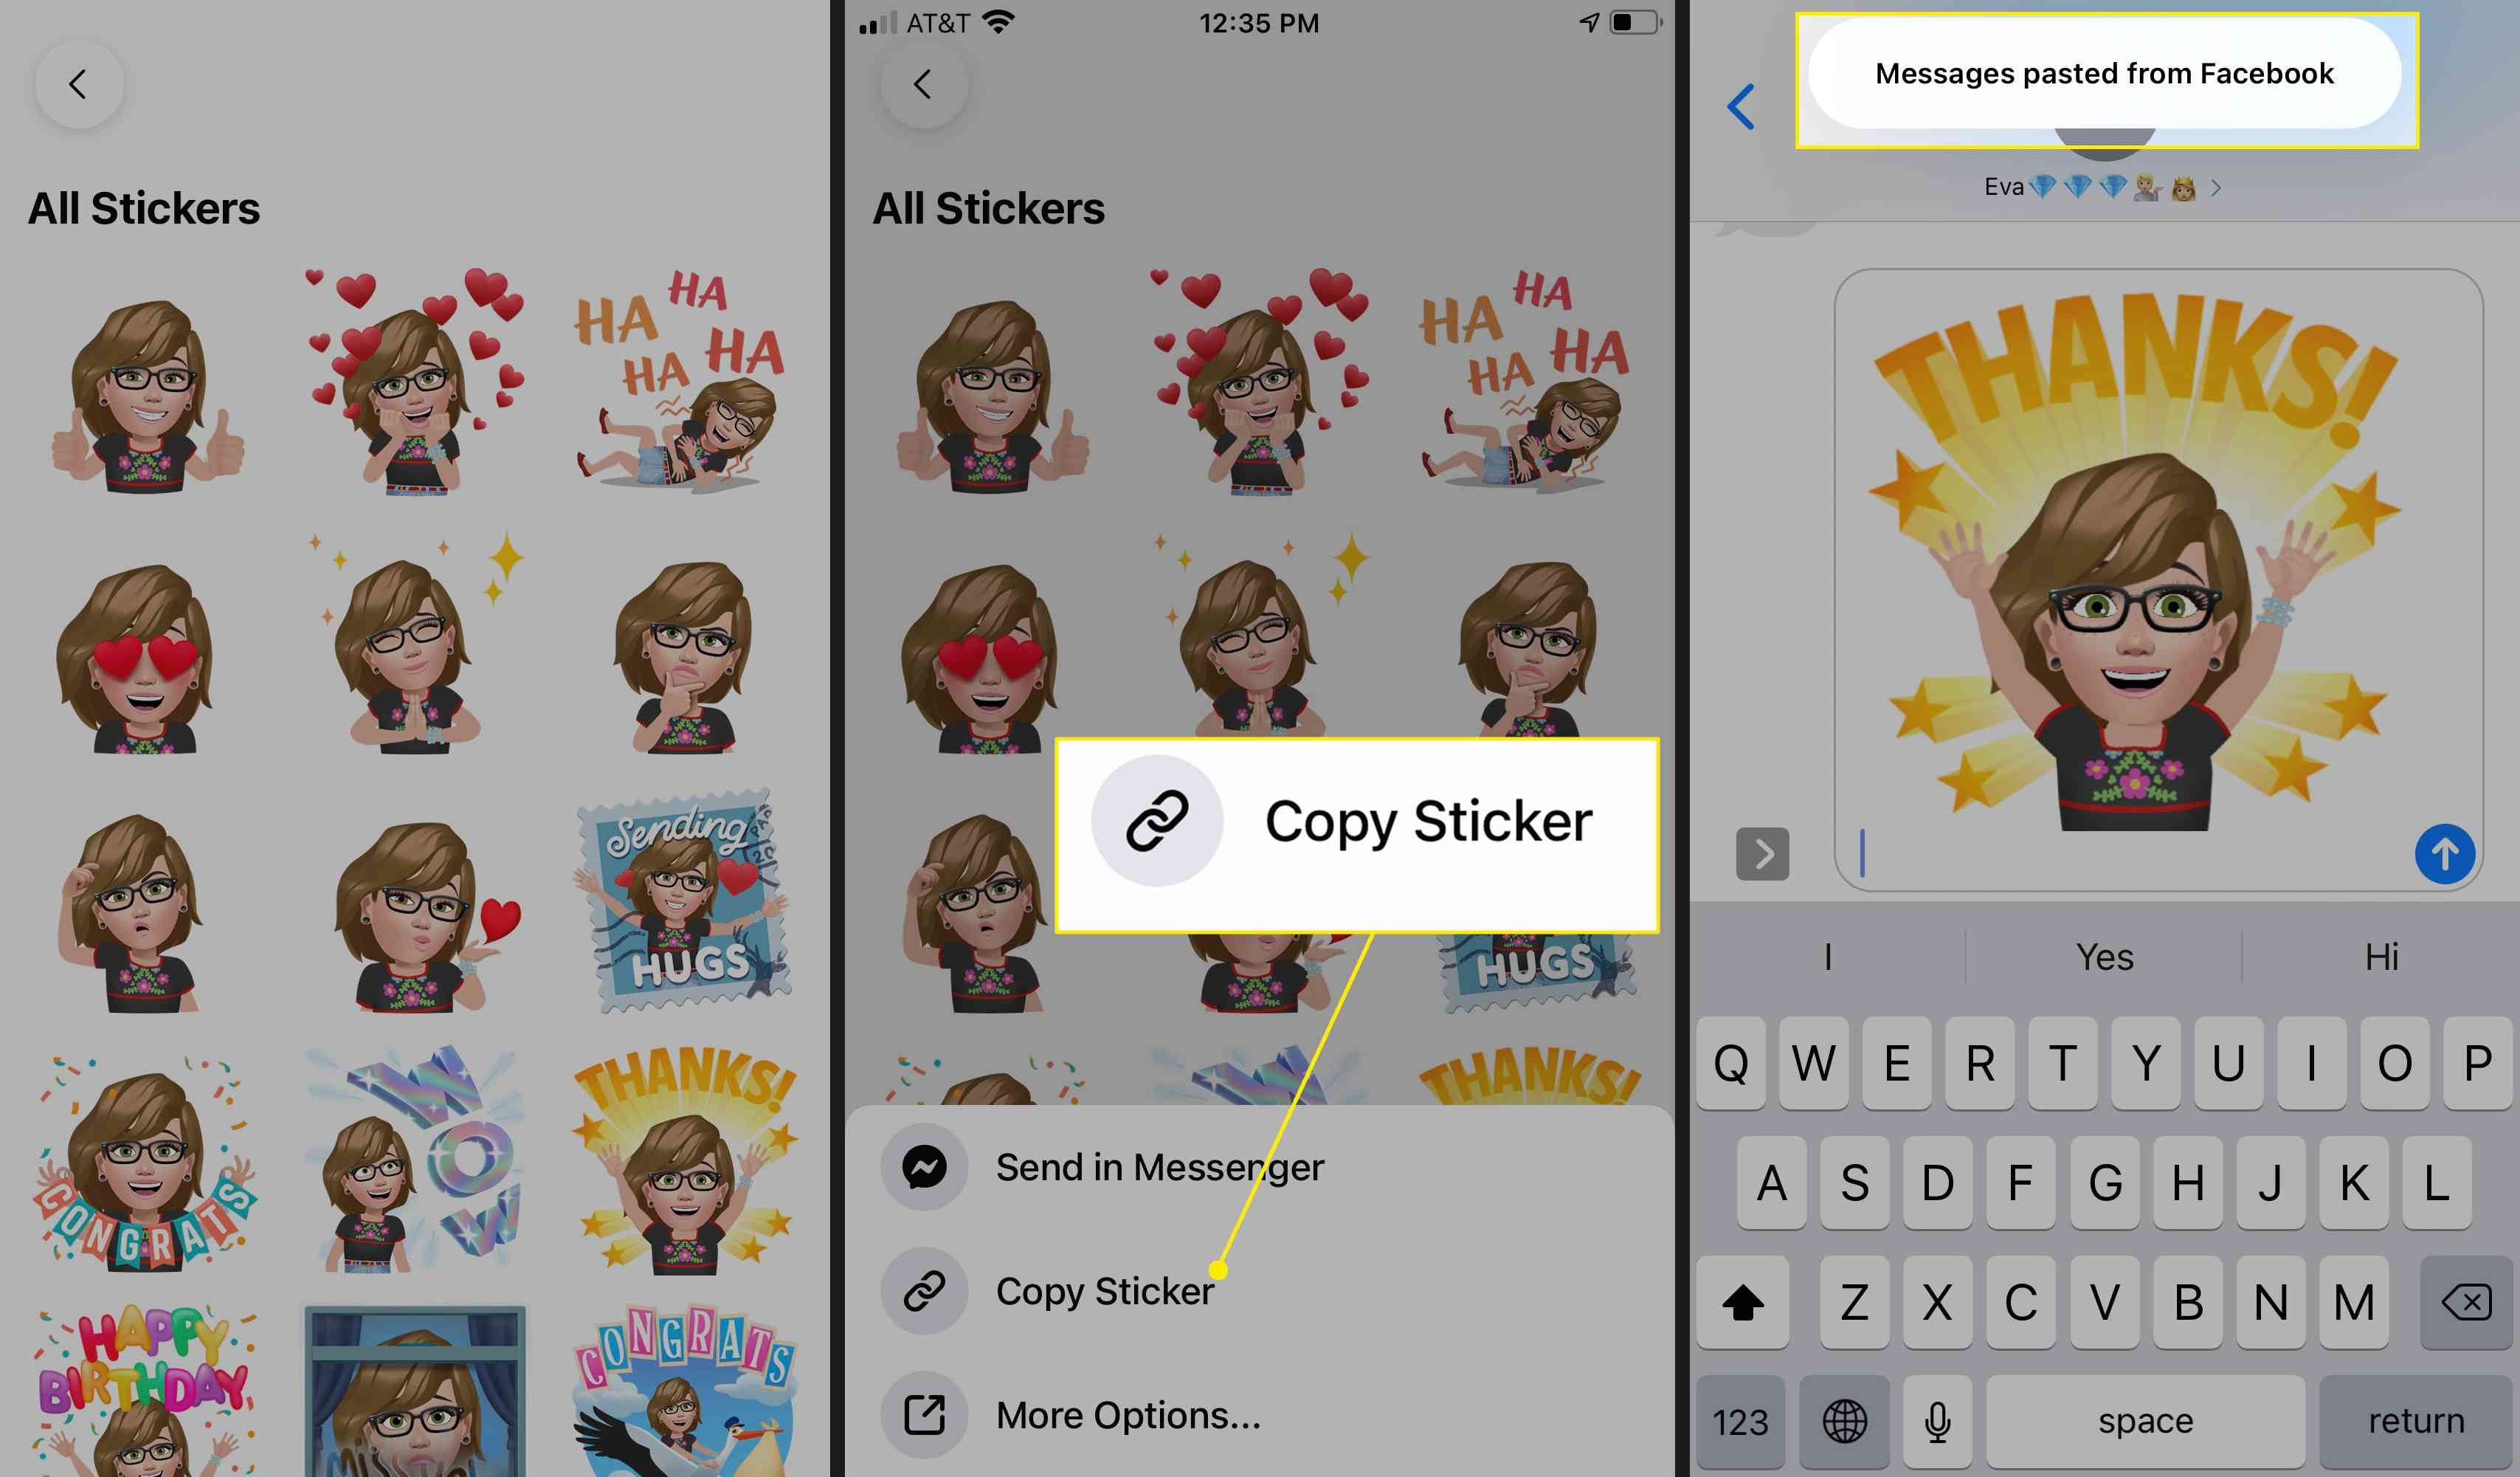 To copy a sticker to send it via text or email, tap the sticker, then tap Copy Sticker.